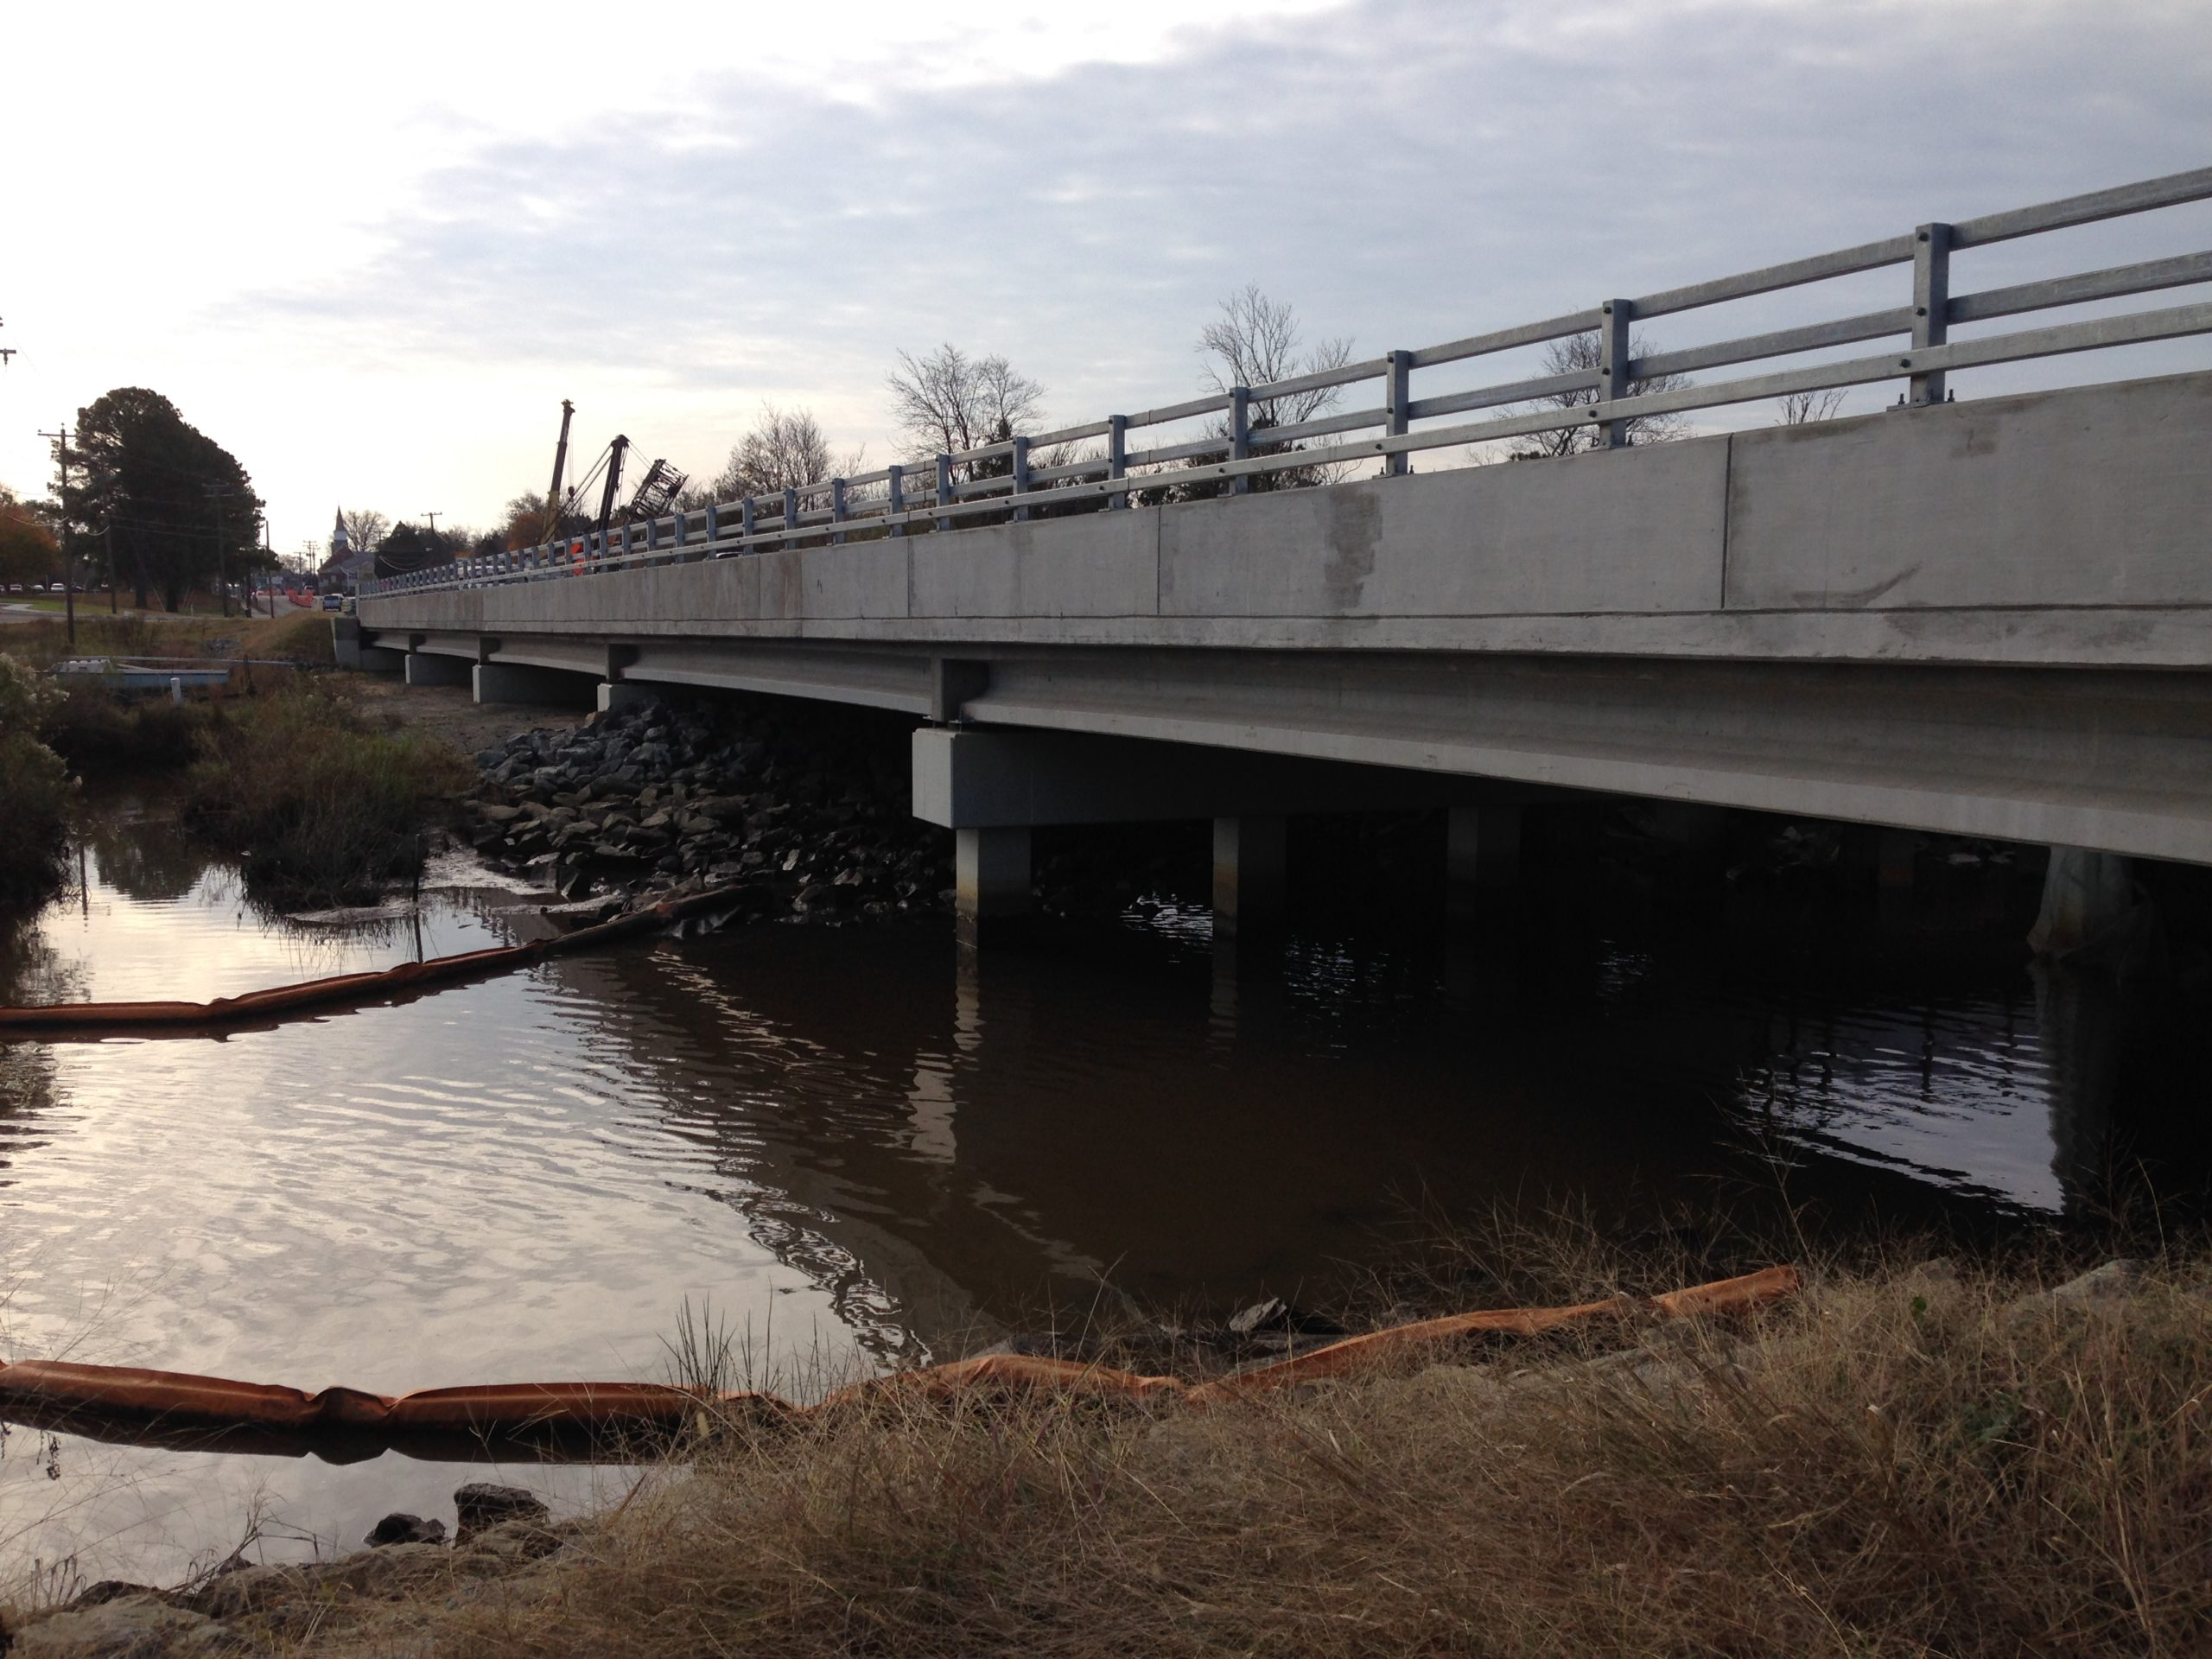 Route 17 over Tignor Creek-Tappahannock, VA: Replacement of existing culvert with a new 5-span bridge